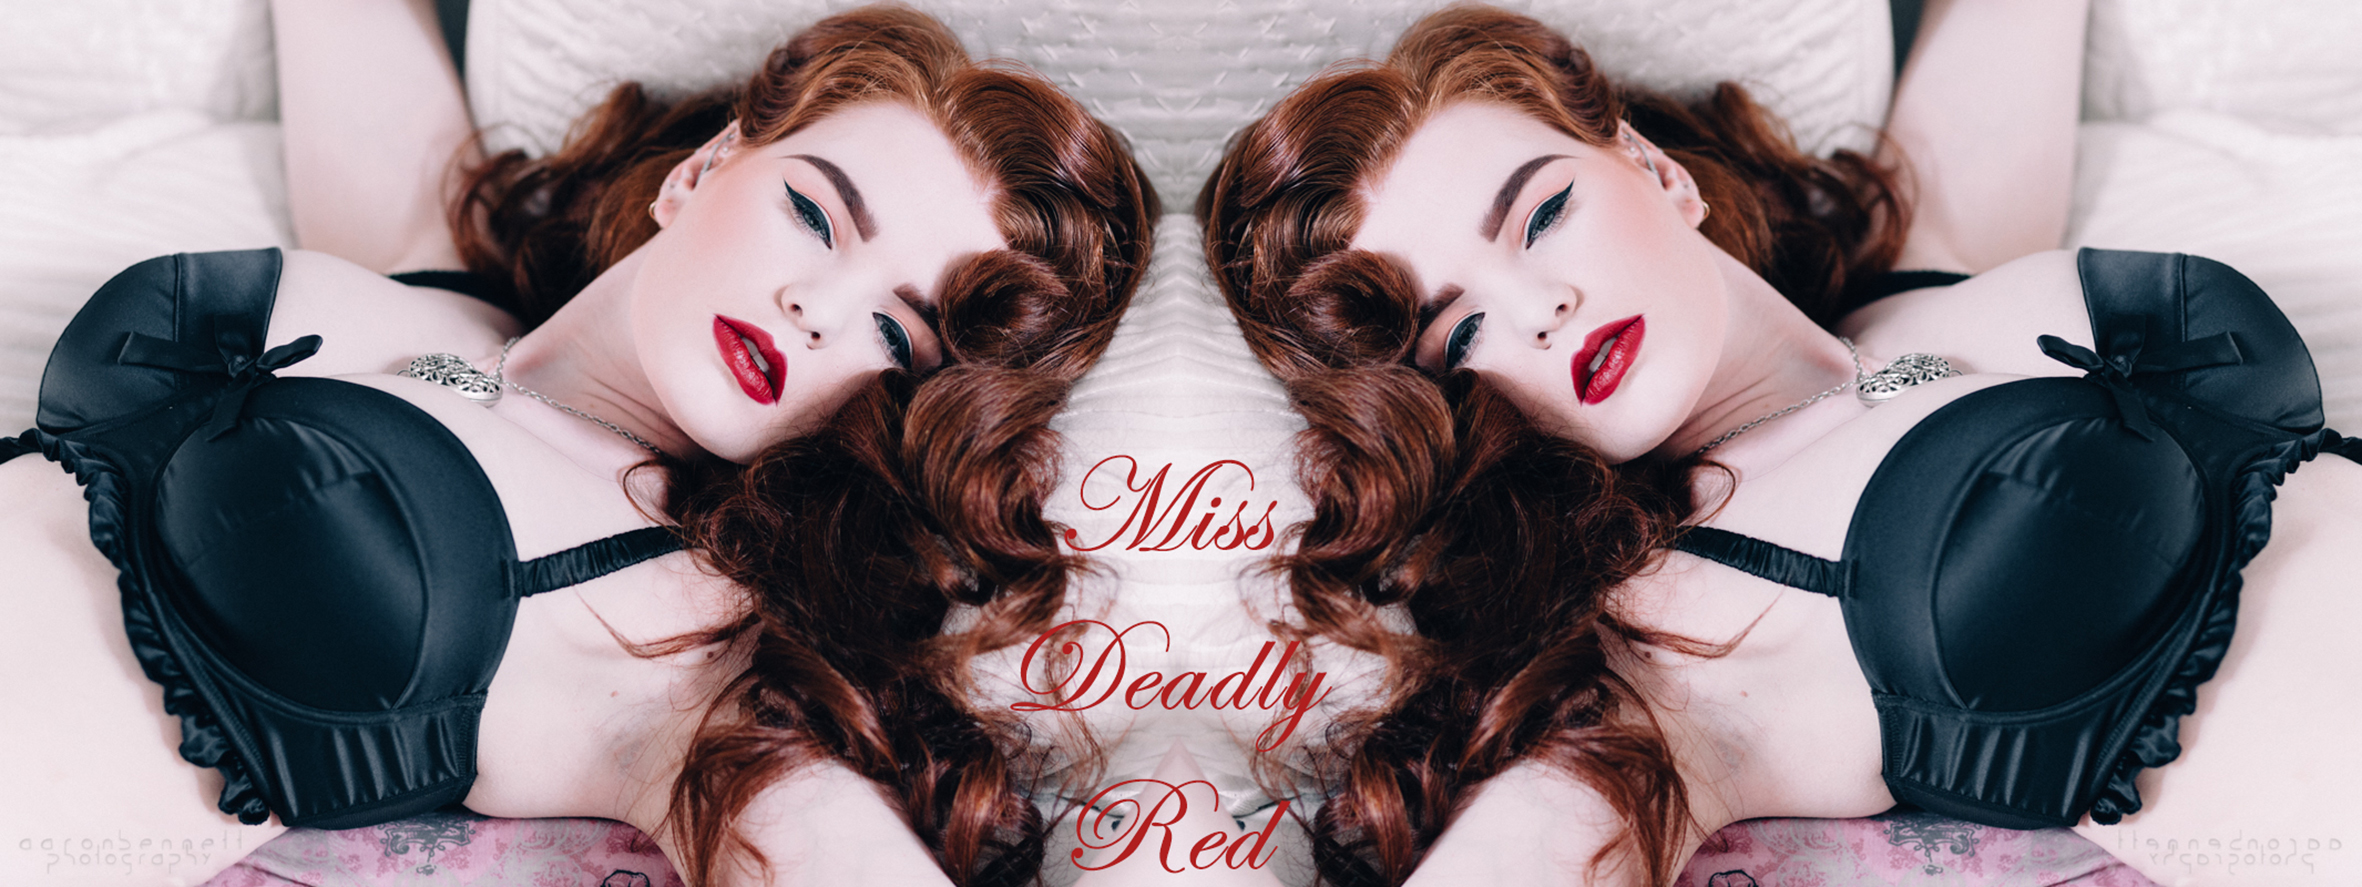 A Day In The Life Of Miss Deadly Red....